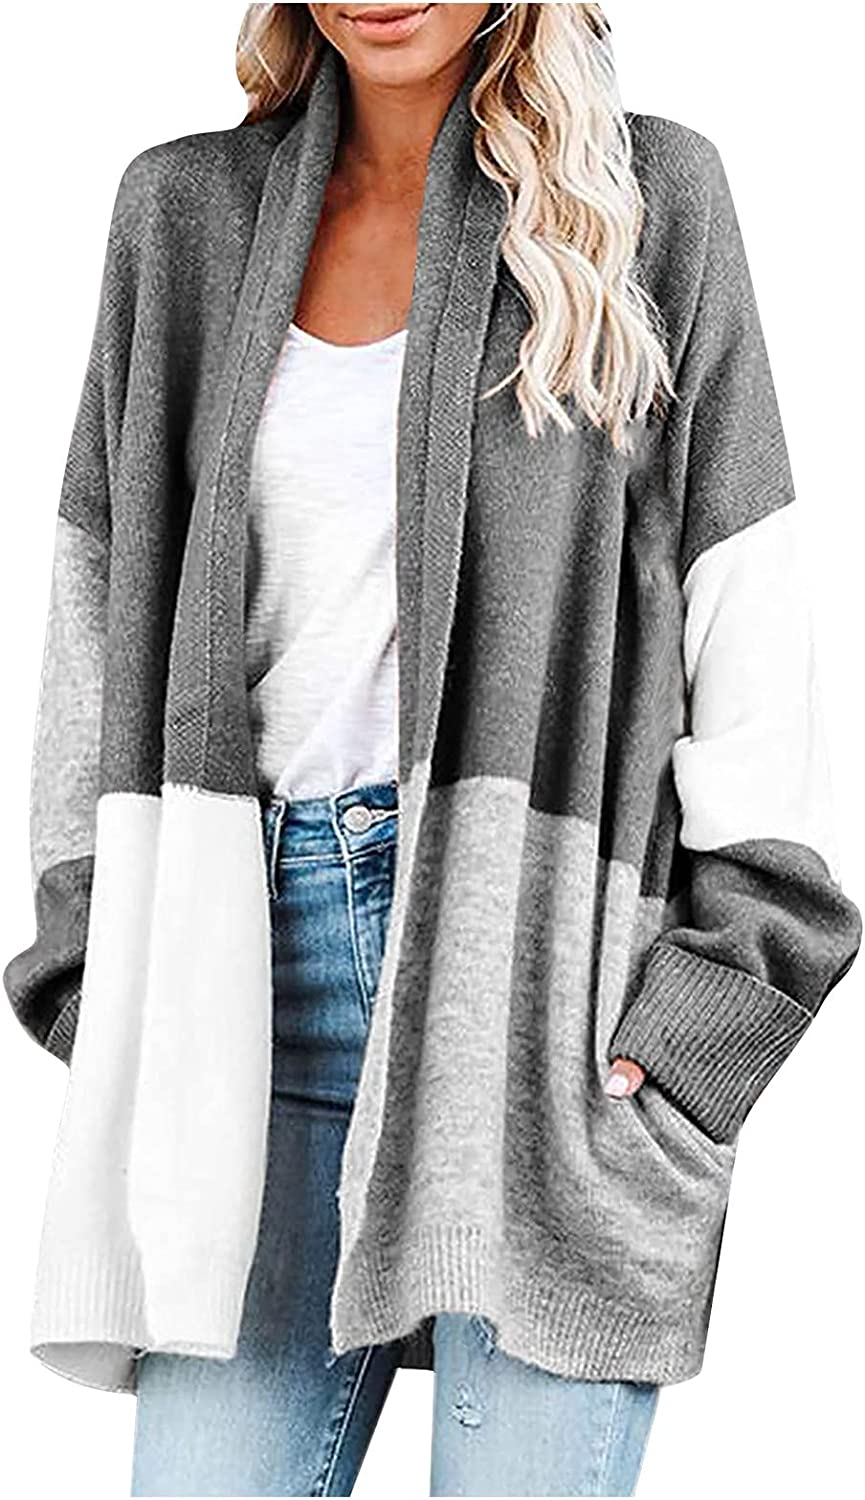 SERYU Women Long Sleeve Cardigans Open Front Patchwork Lightweight Sweaters Casual Loose Coats